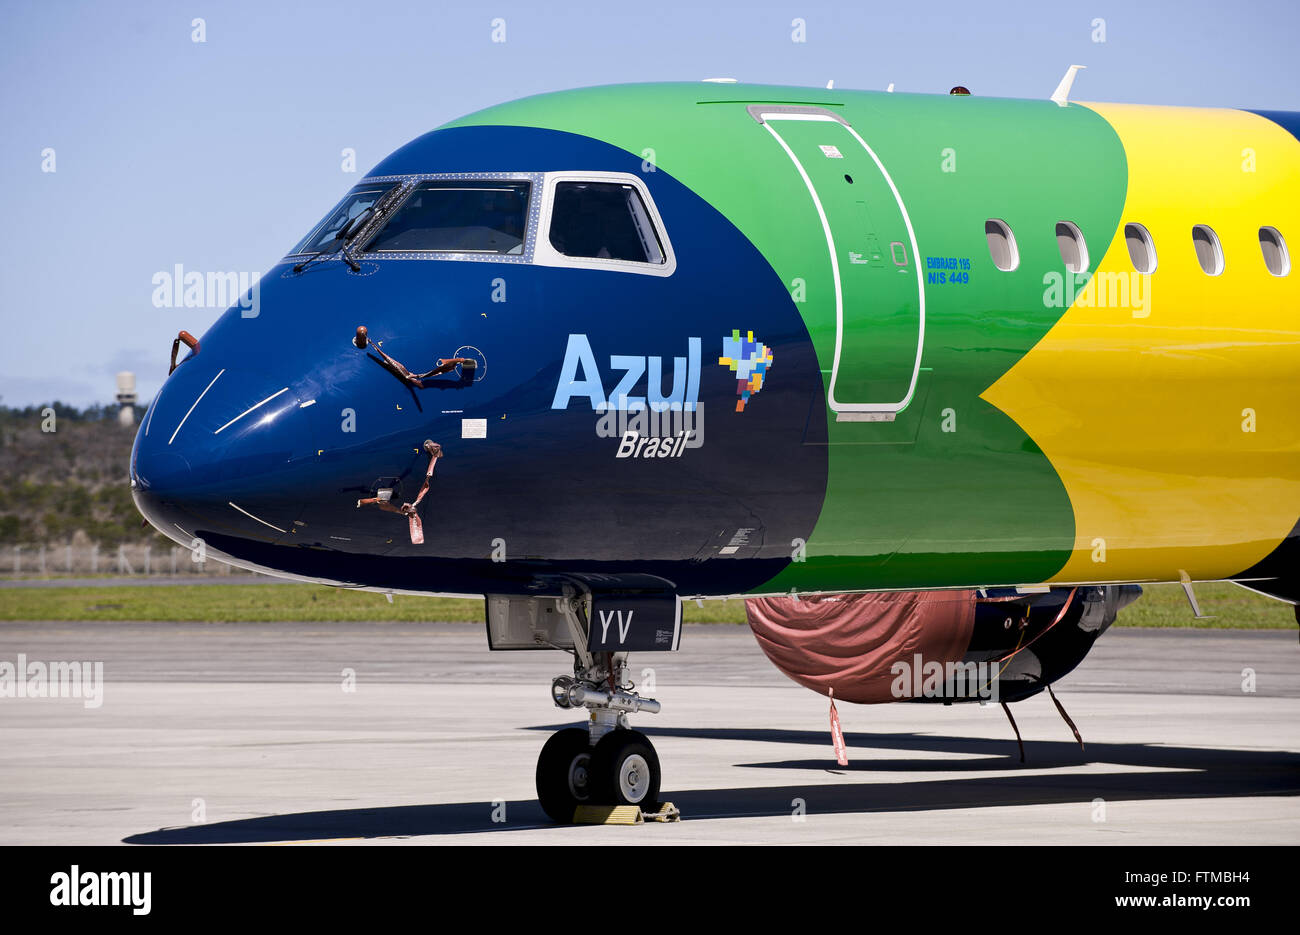 Azul Linhas Aereas plane produced by Embraer - Stock Image